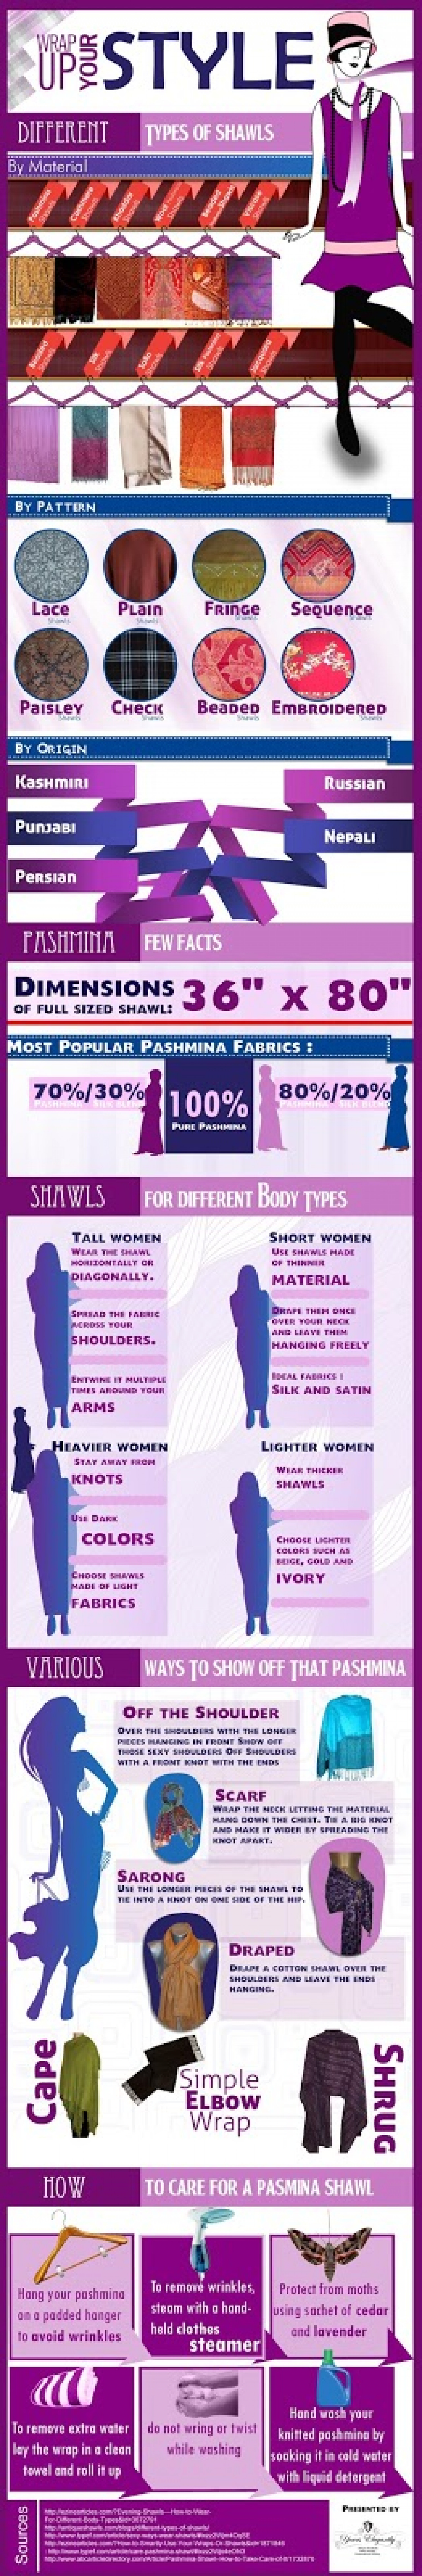 Wrap Up Your Style with Pashmina and Cashmere Shawls (infographic) Infographic